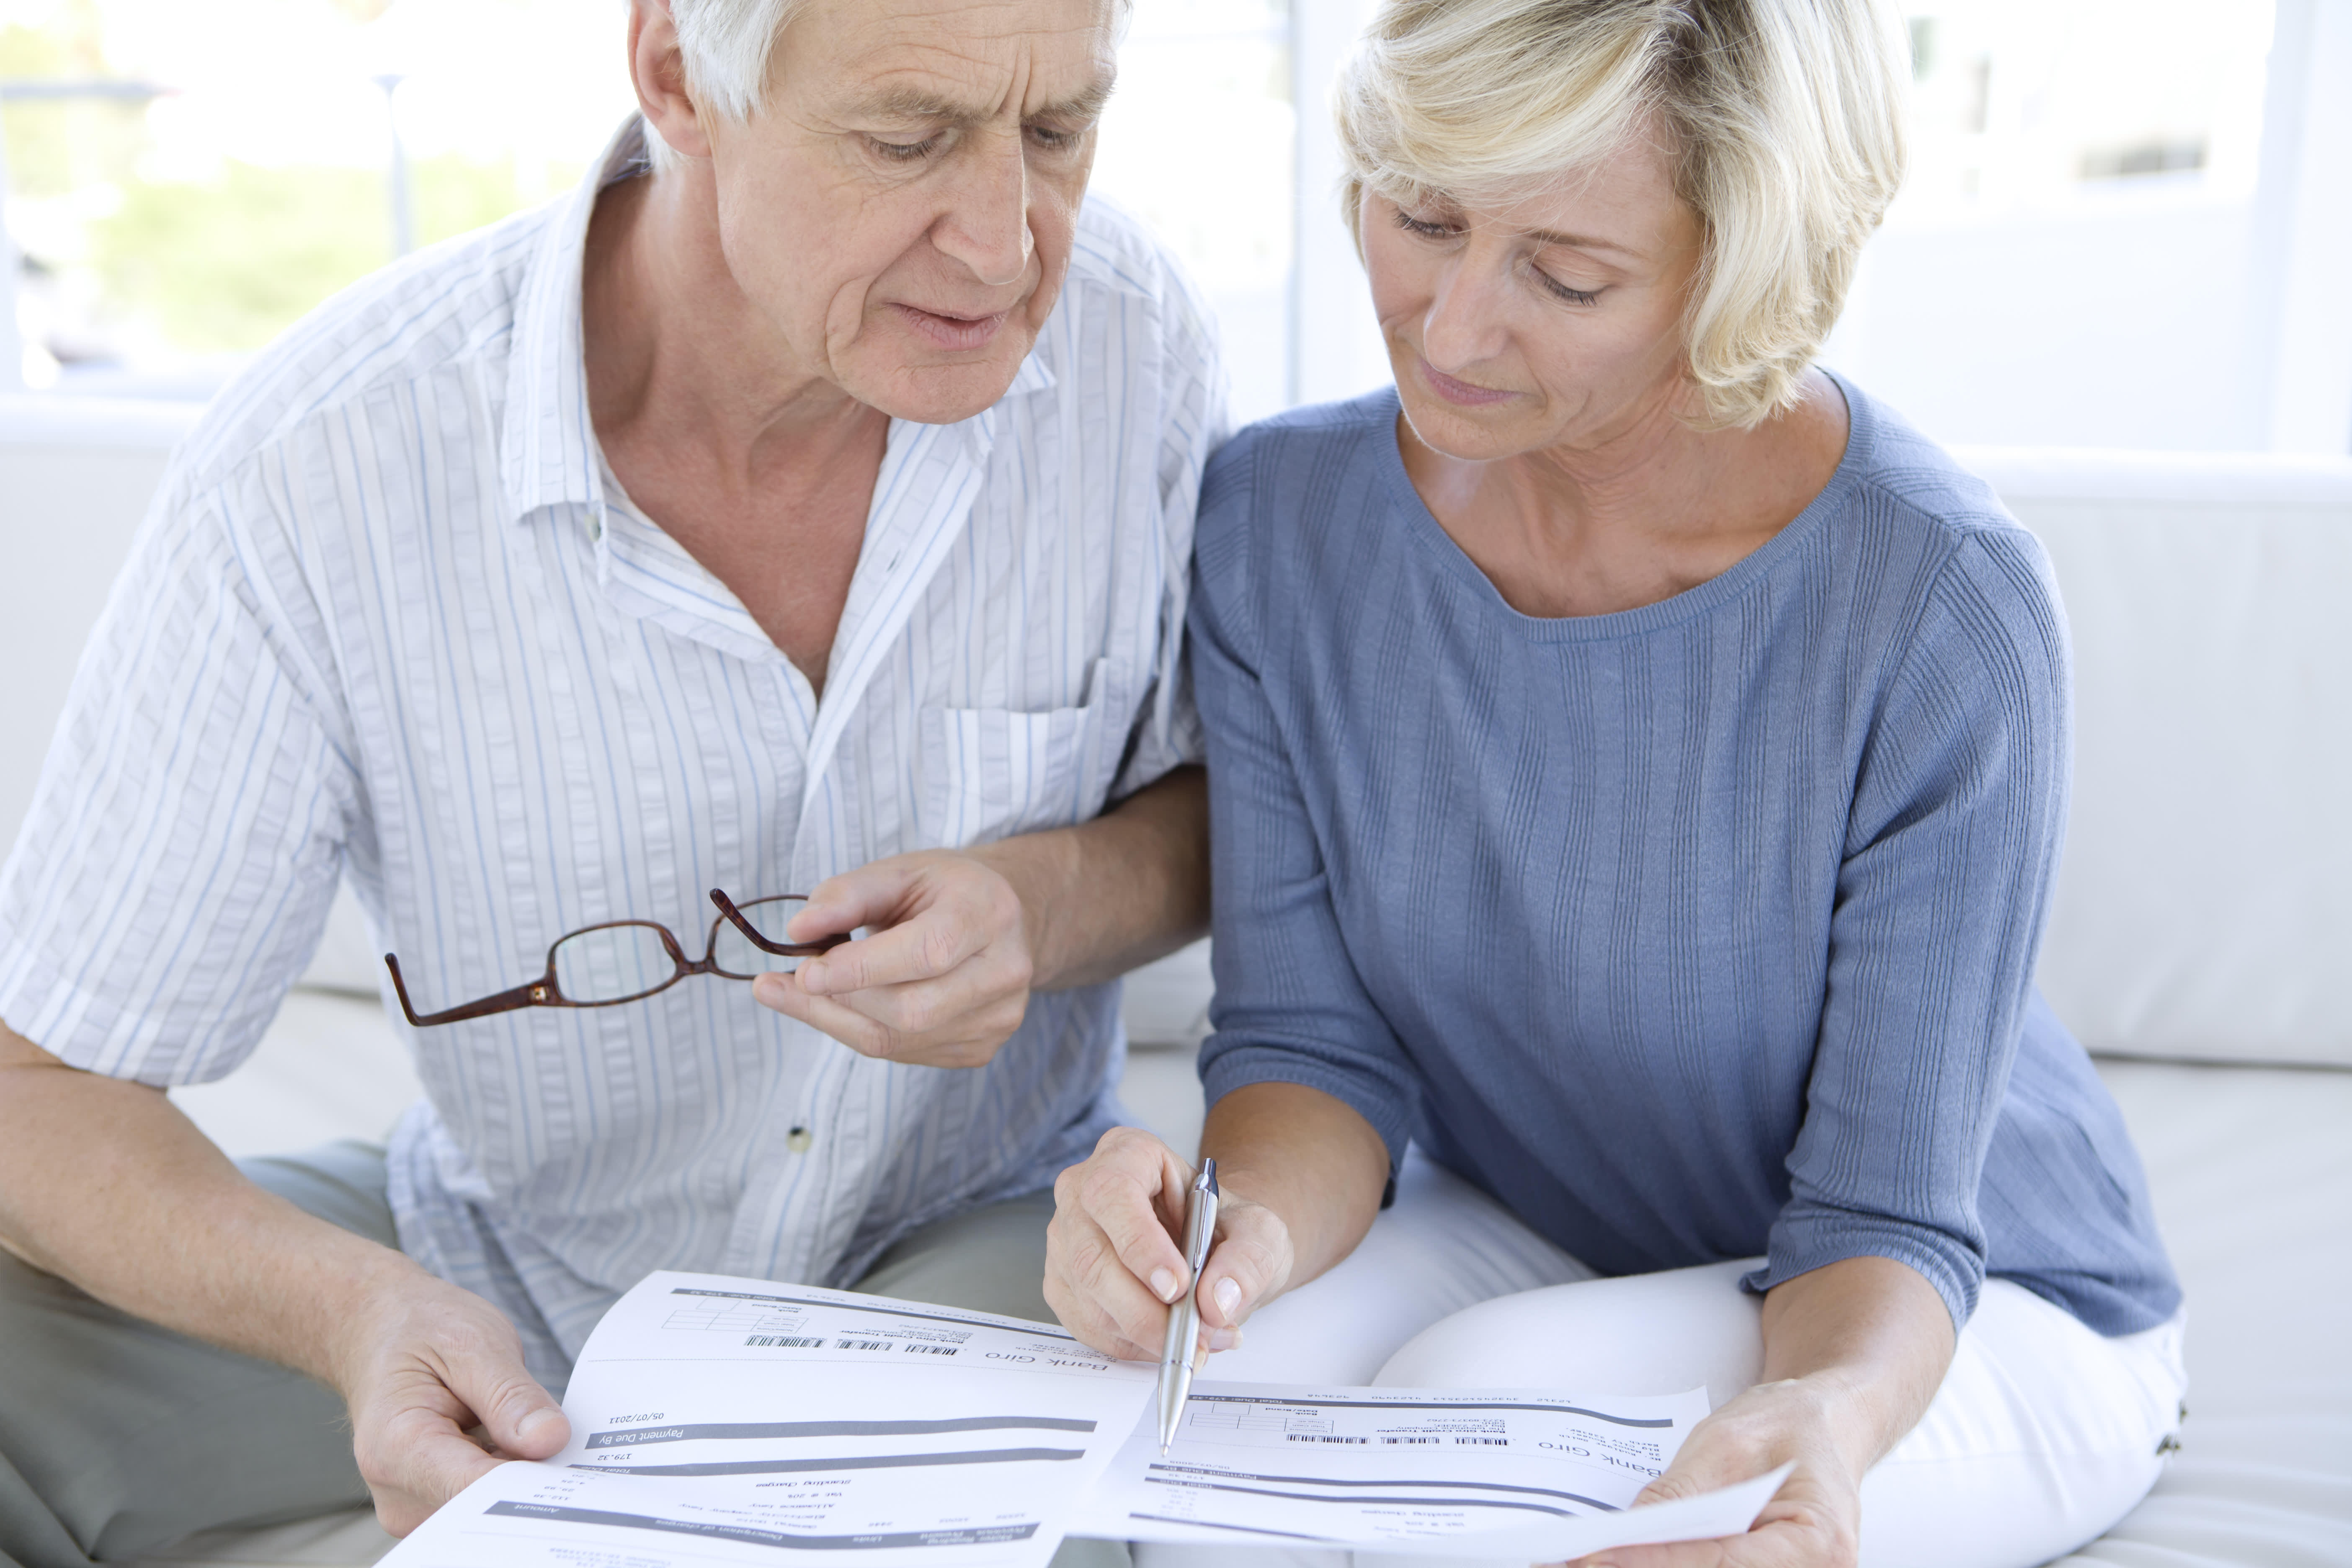 Social Security beneficiaries urged to file tax returns to get stimulus checks